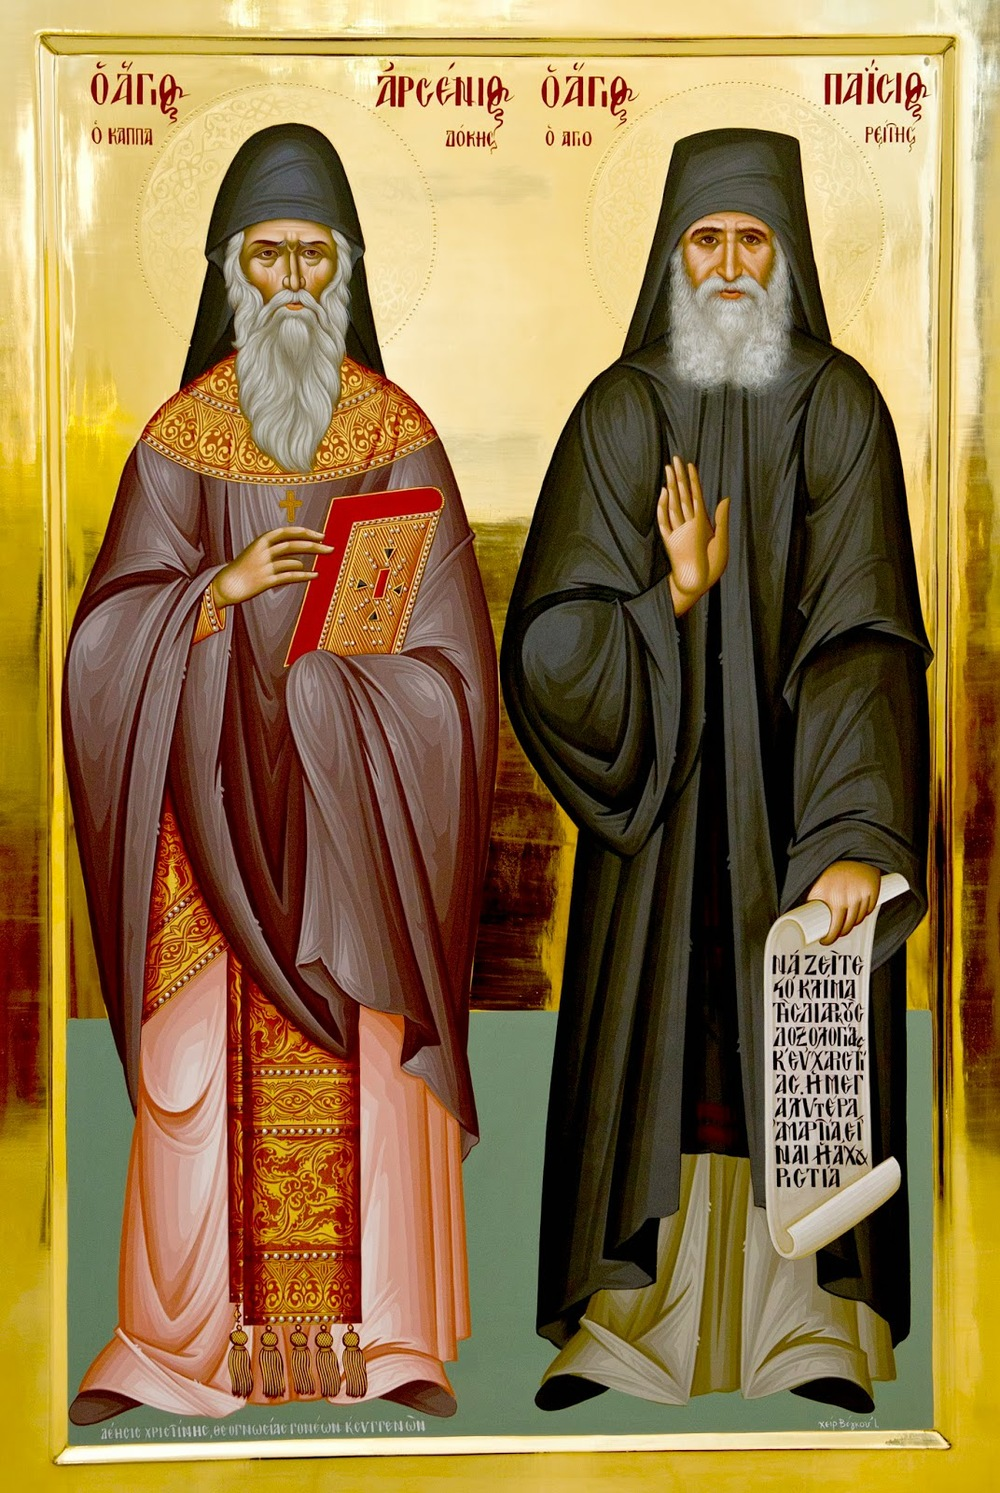 St. Paisios the Hagiorite (July 12) with St. Arsenios of Cappadocia (Nov. 10)